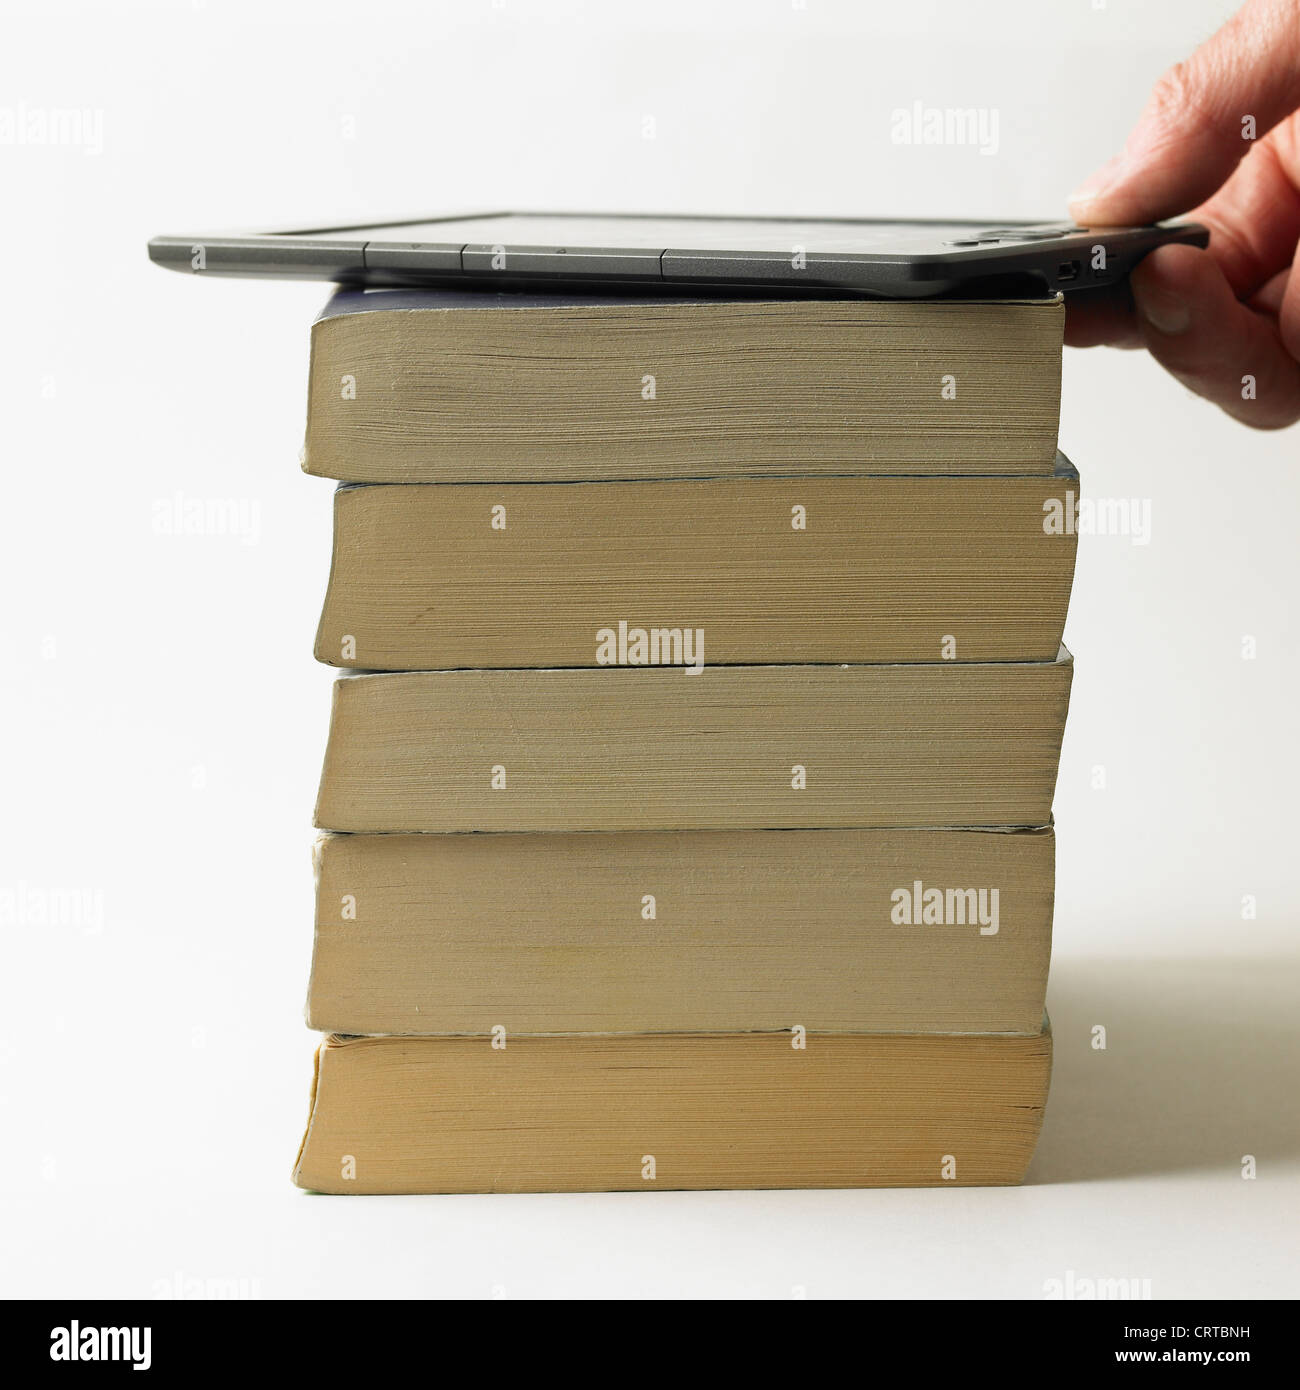 Electronic book on top of a pile of paperbacks - Stock Image